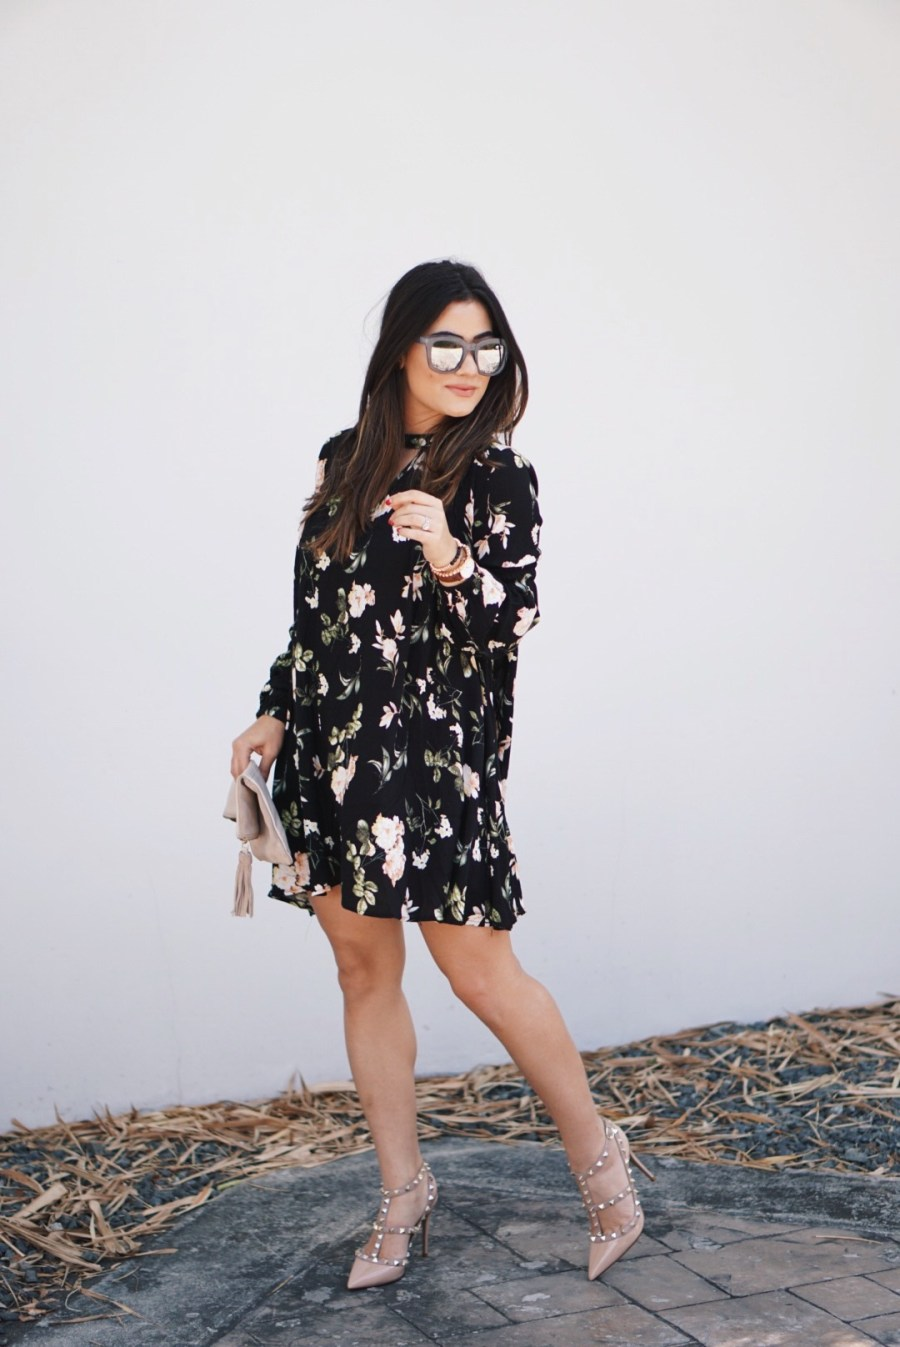 Sugar Love Chic Blogger Krista Perez shares 7 Floral Dresses You'll Live in This Spring